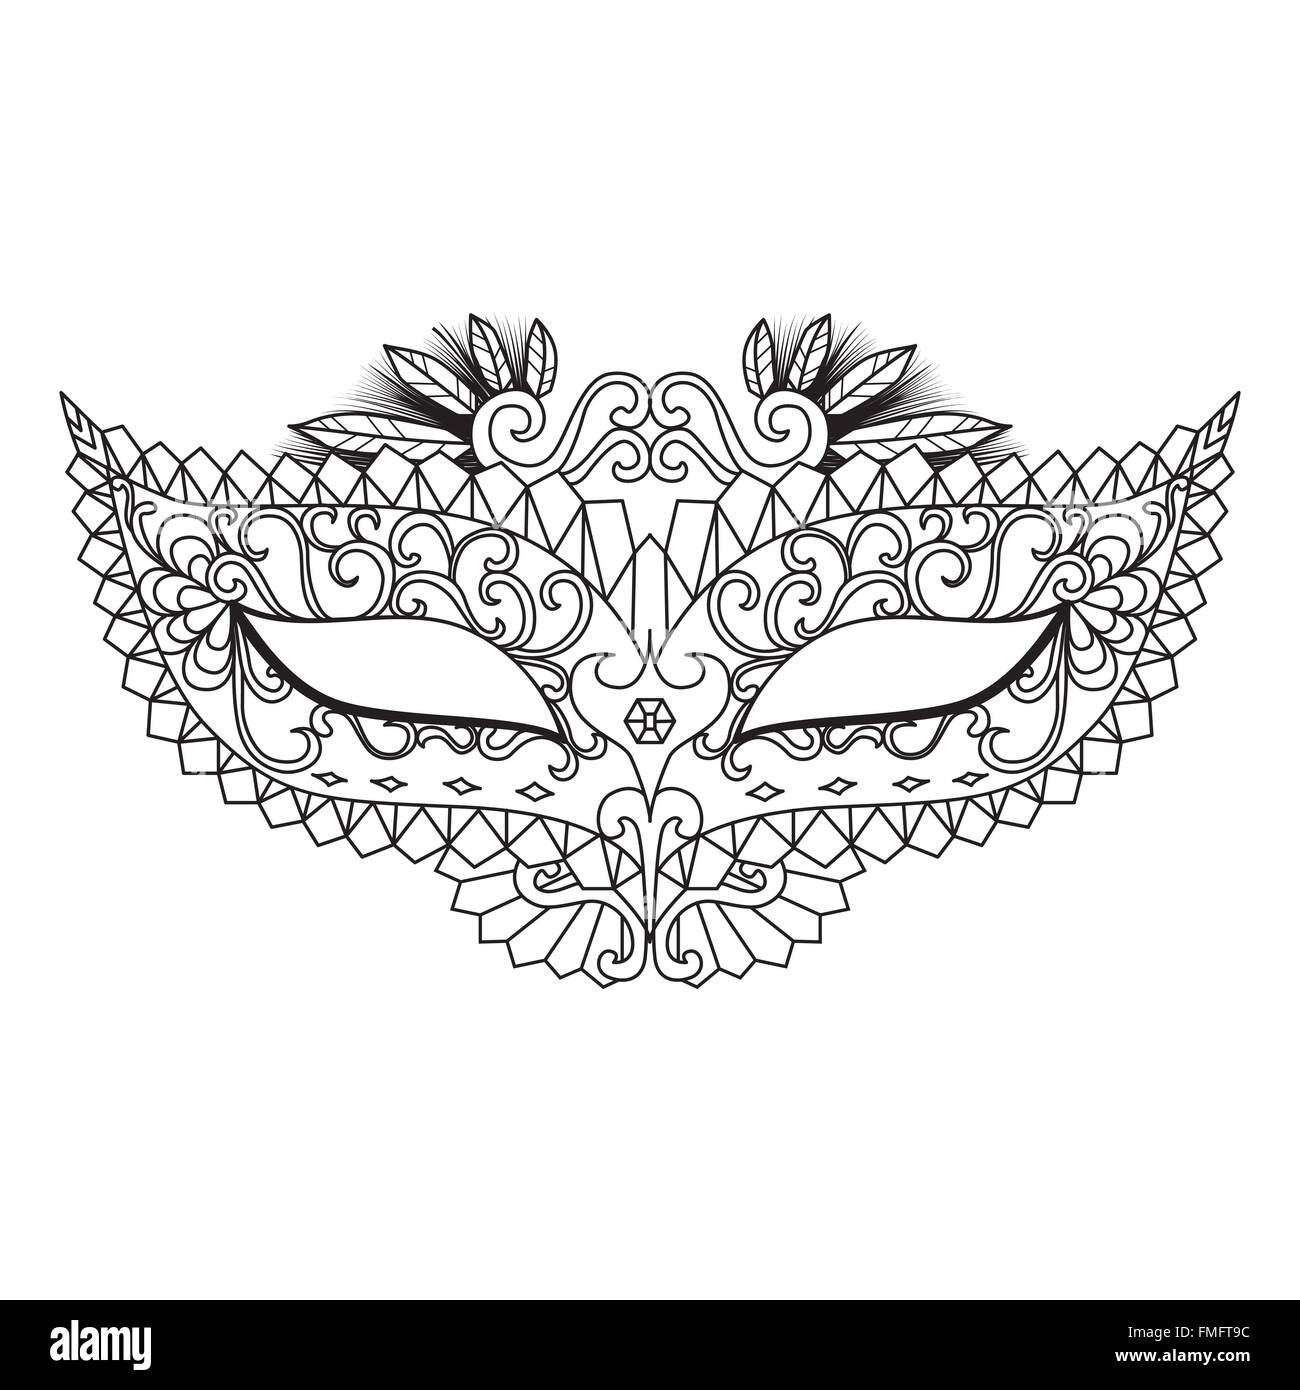 Mardi Gras Carnival Mask for coloring book and other decorations - Stock Vector